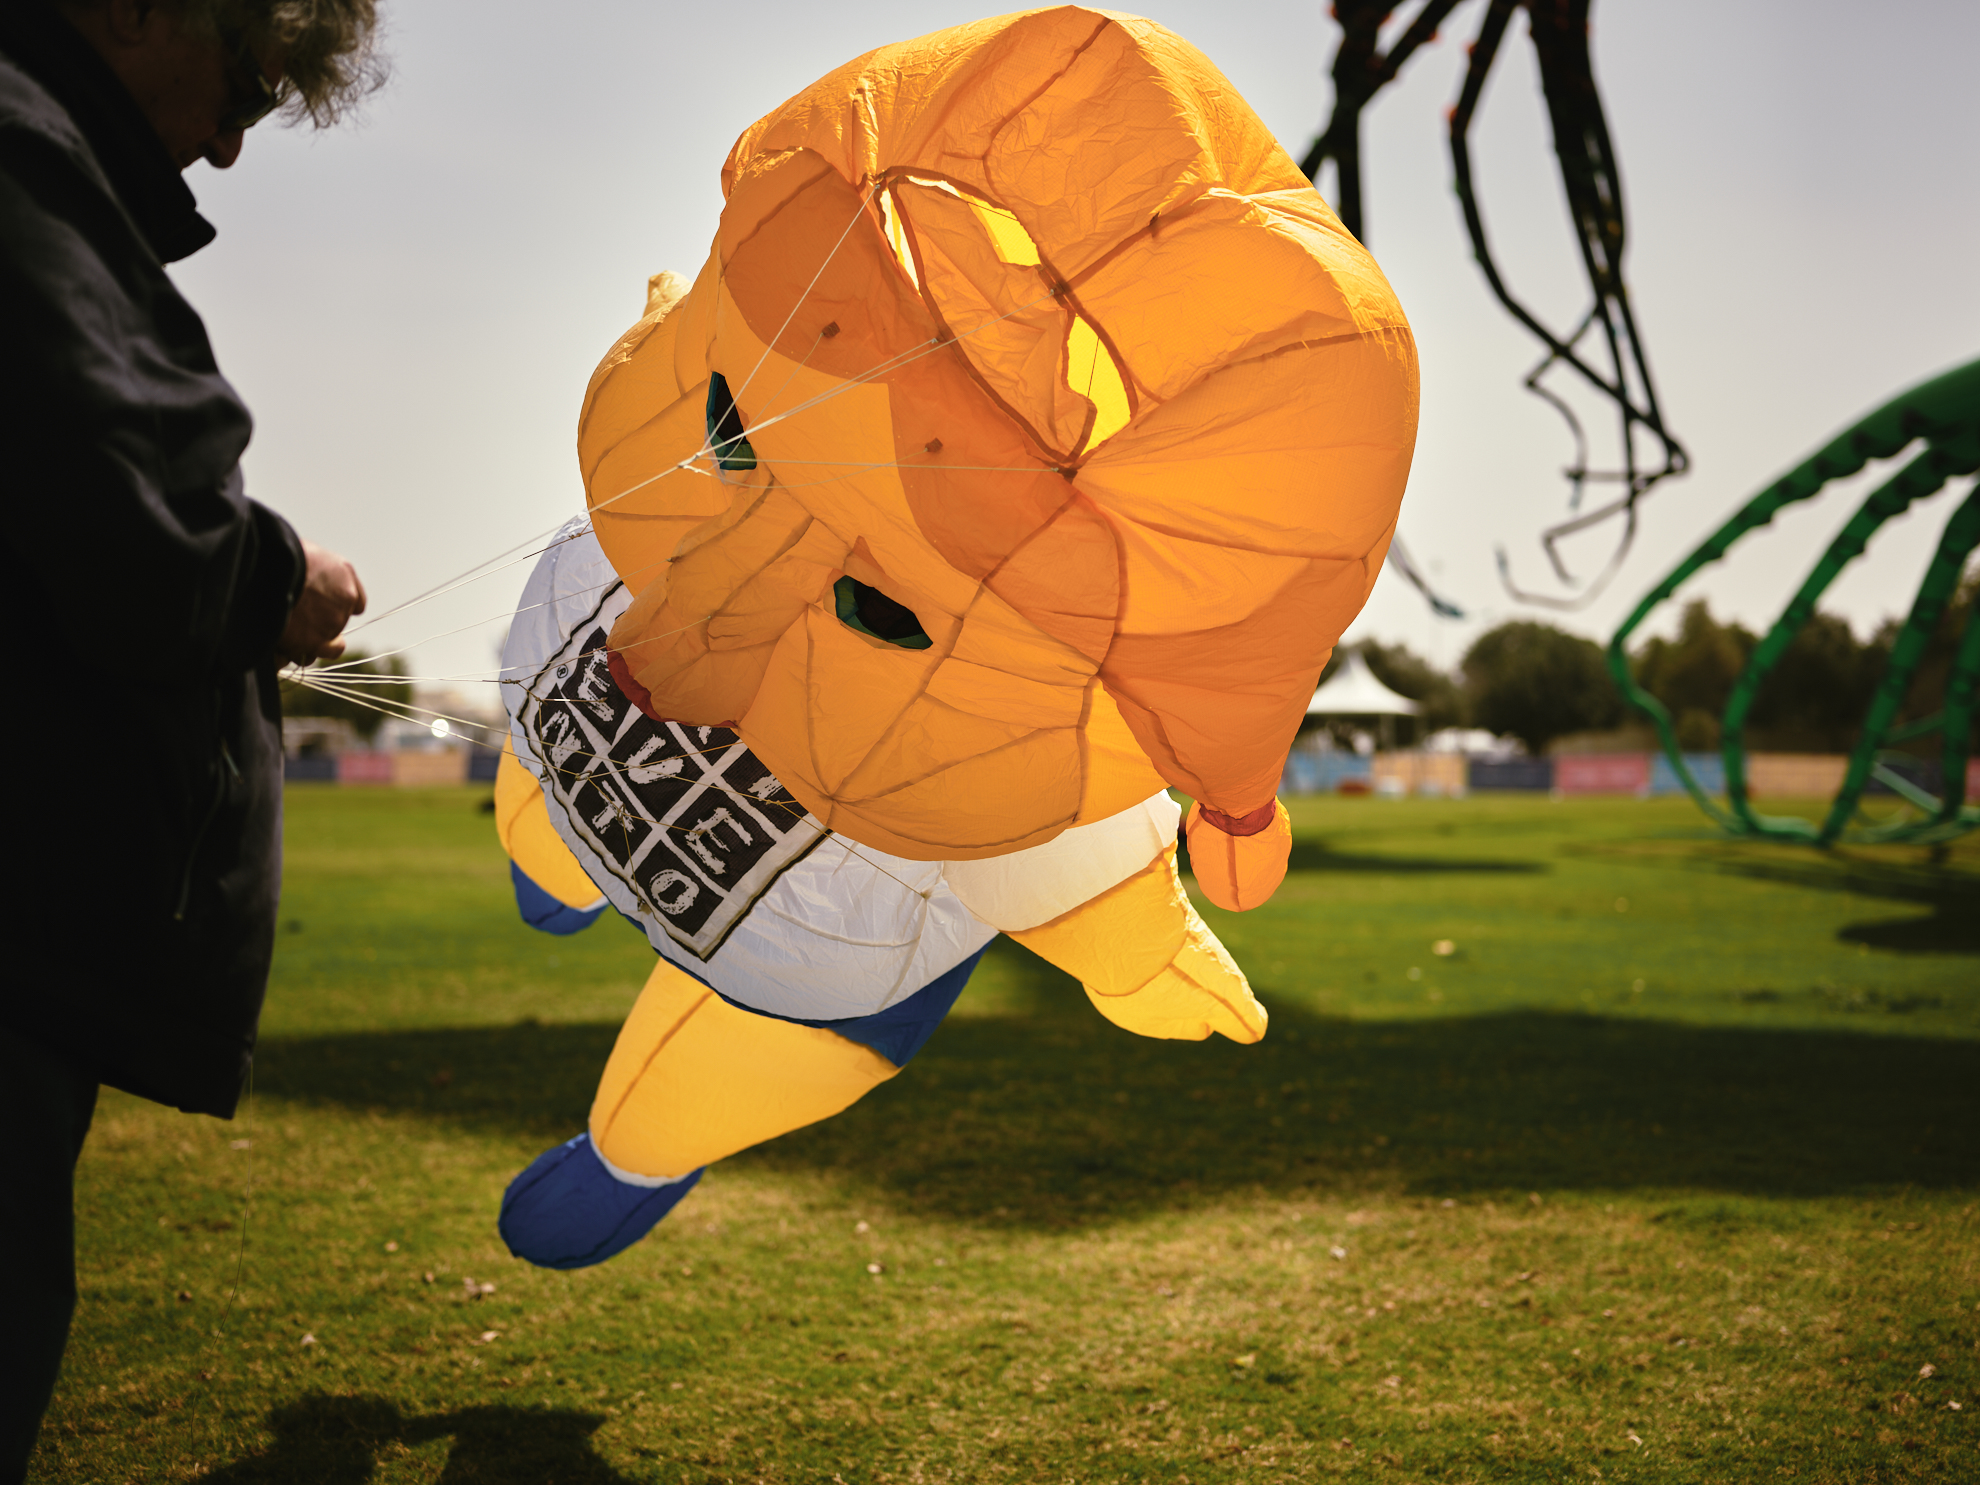 aspire kite festival photography artevento